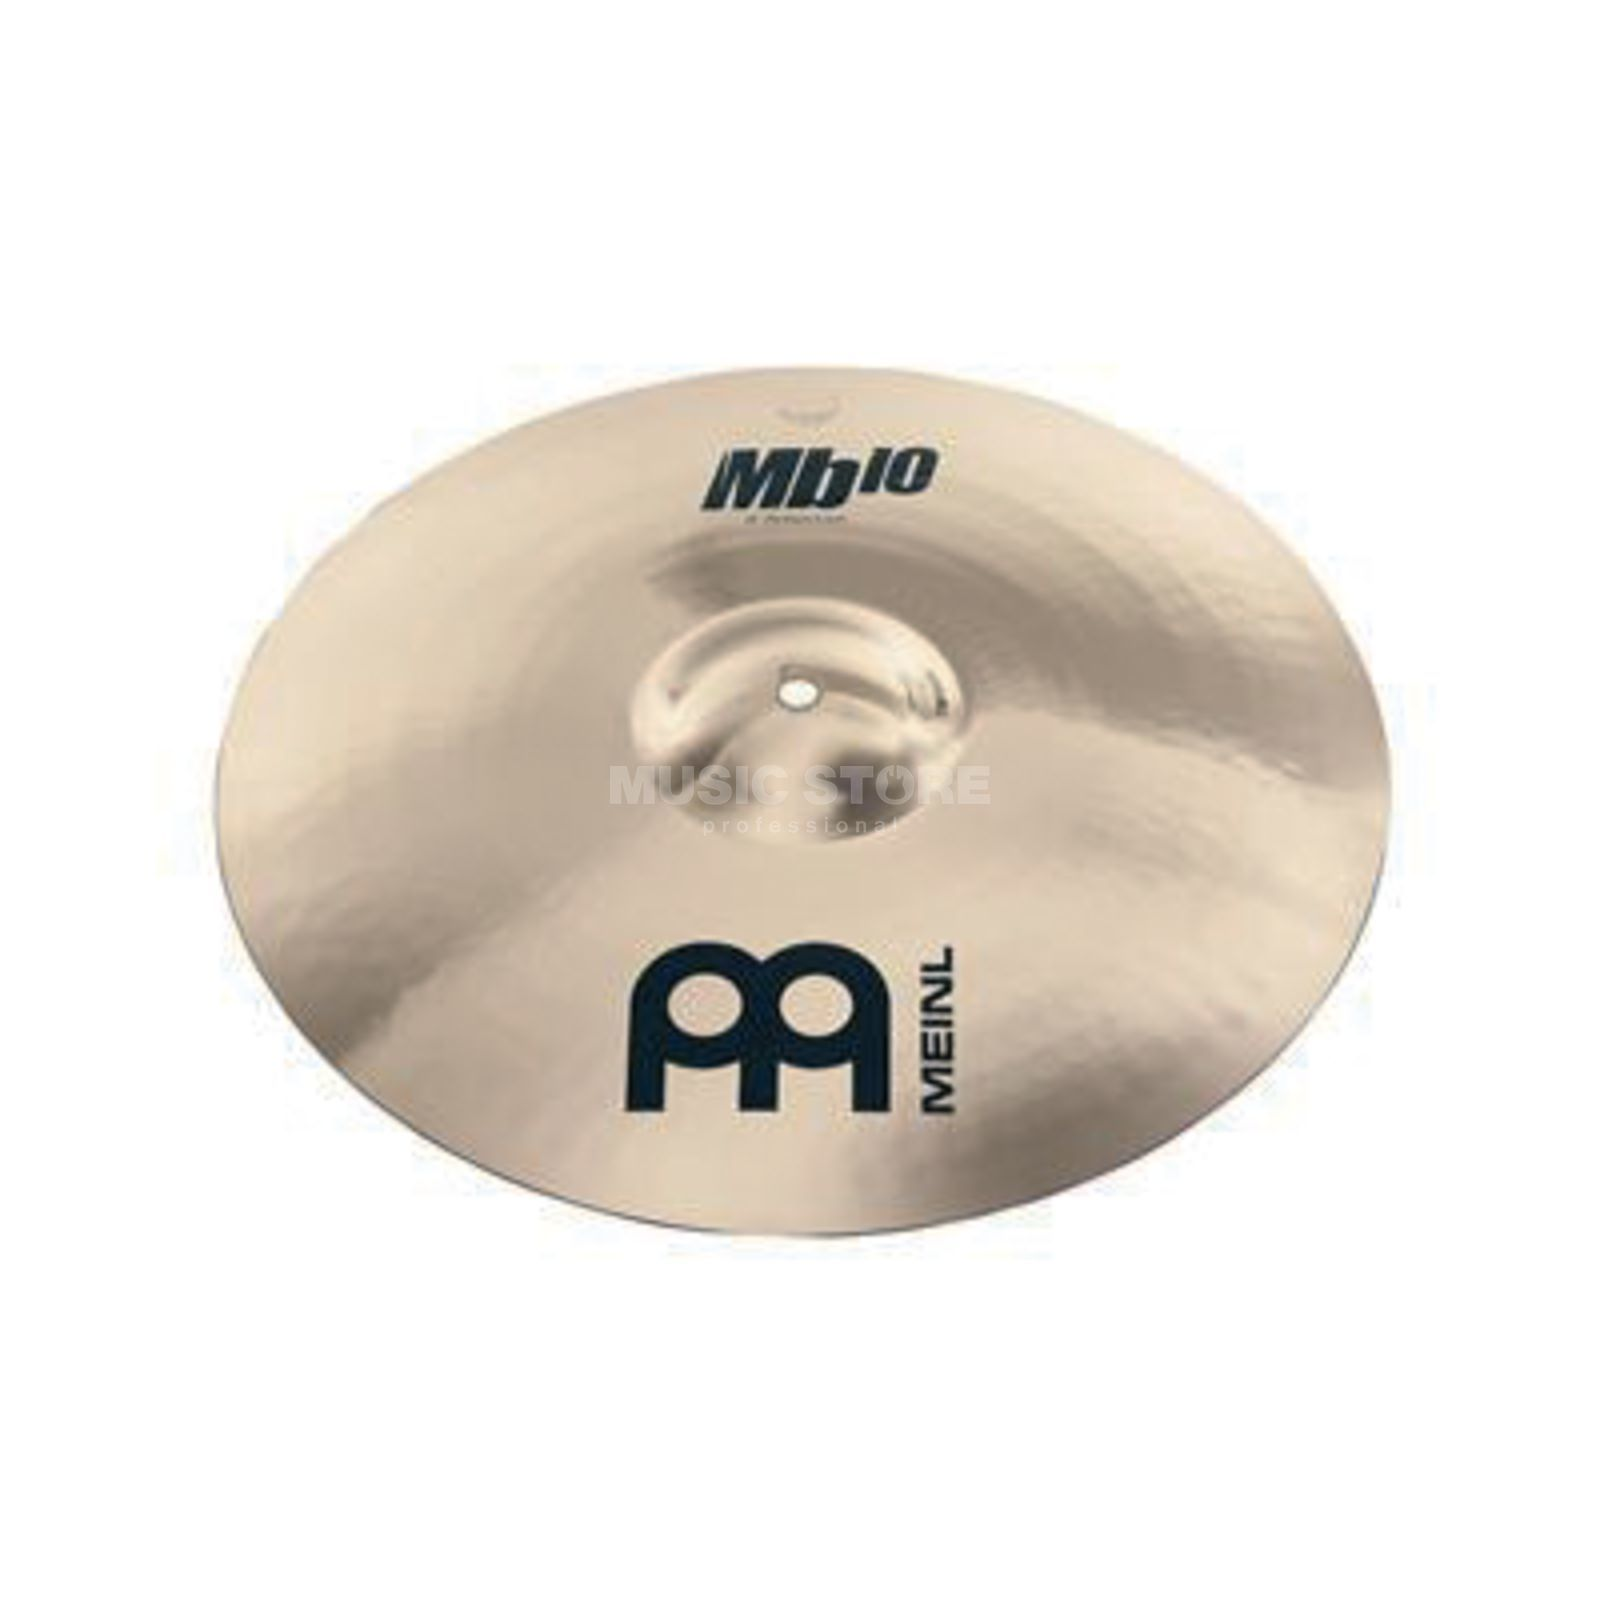 "Meinl MB10 Thin Crash 16"" MB10-16TC-B, Brilliant Finish Immagine prodotto"